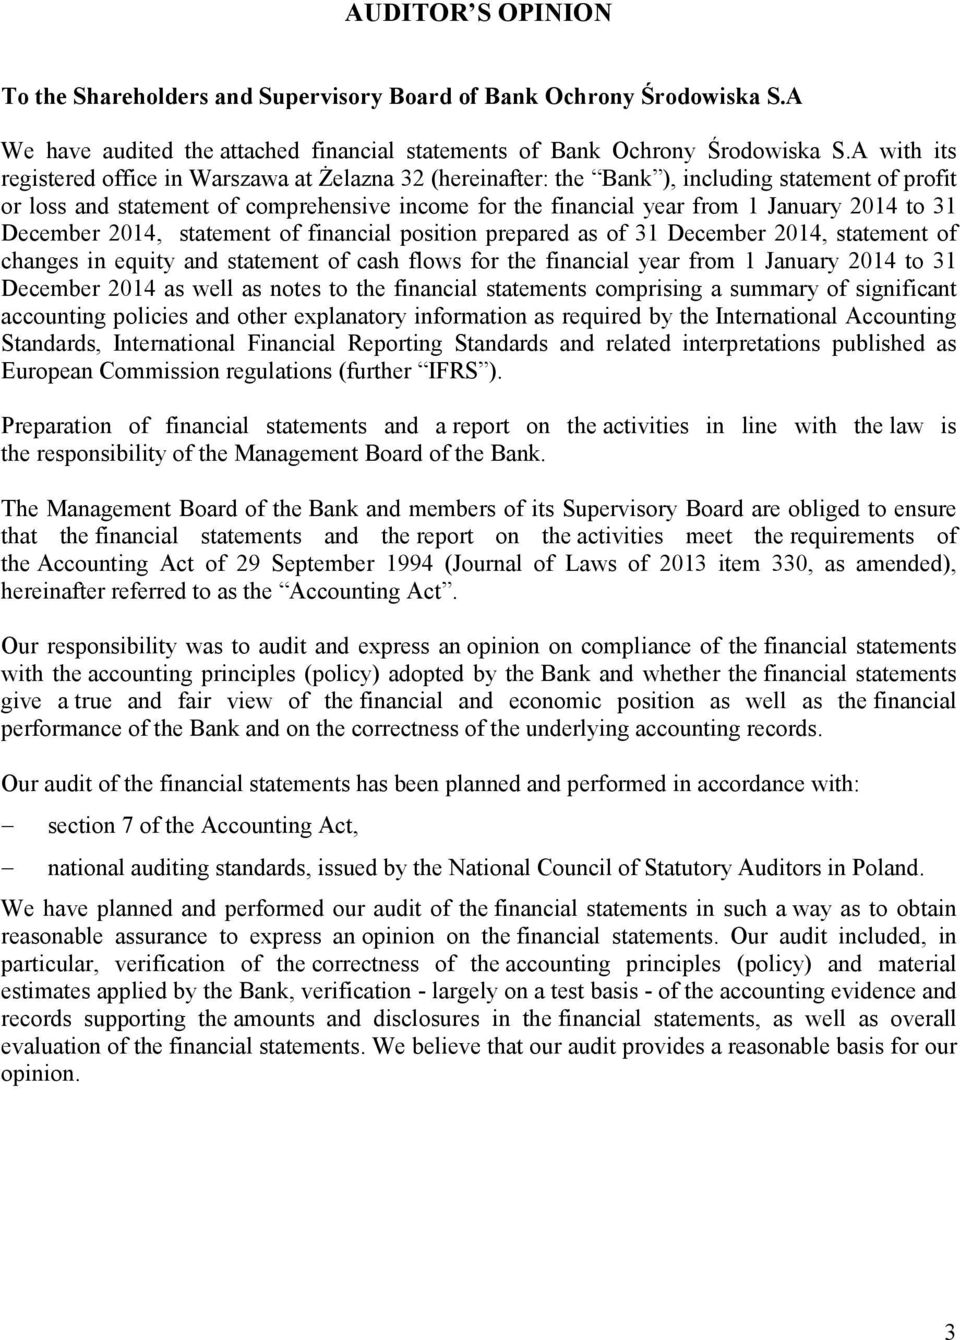 to 31 December 2014, statement of financial position prepared as of 31 December 2014, statement of changes in equity and statement of cash flows for the financial year from 1 January 2014 to 31